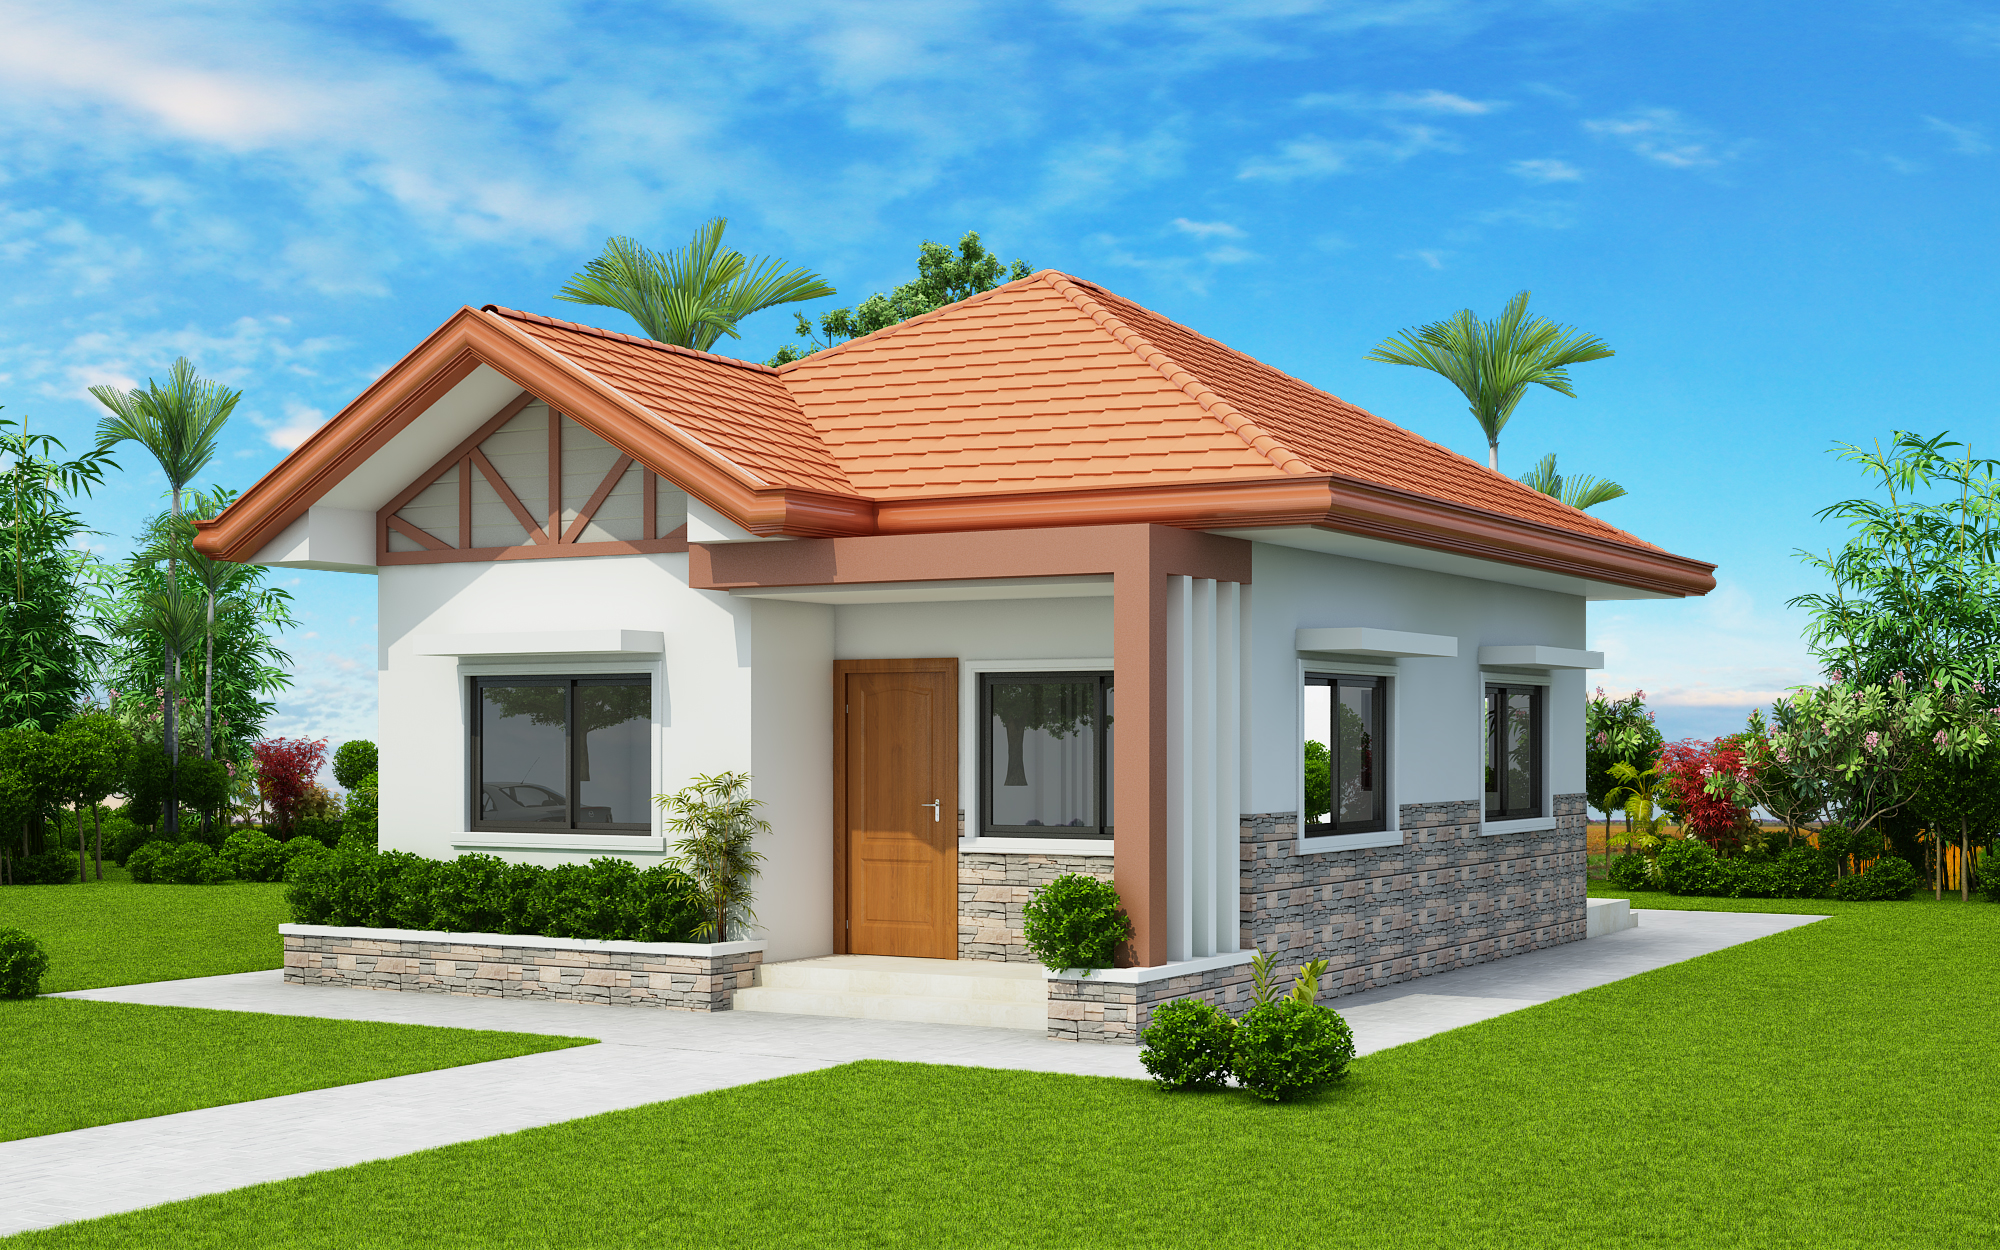 Two Bedroom Small House Design (PHD-2017035)